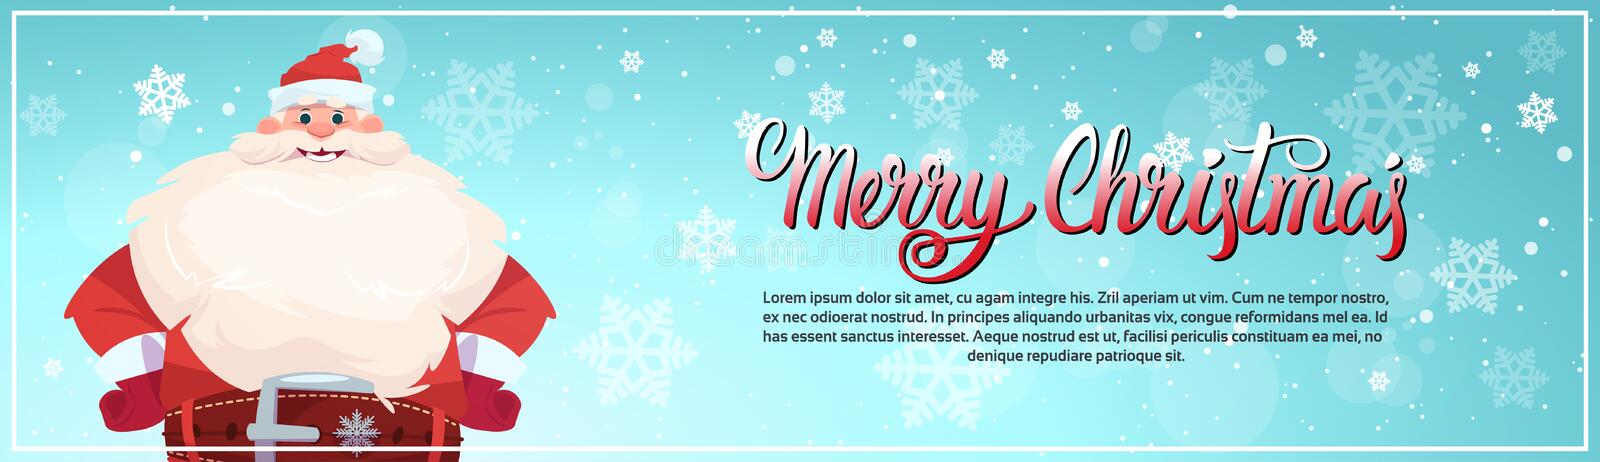 Santa Claus On Merry Christmas Greeting Card Holiday Horizontal Banner With Copy Space vector illustration